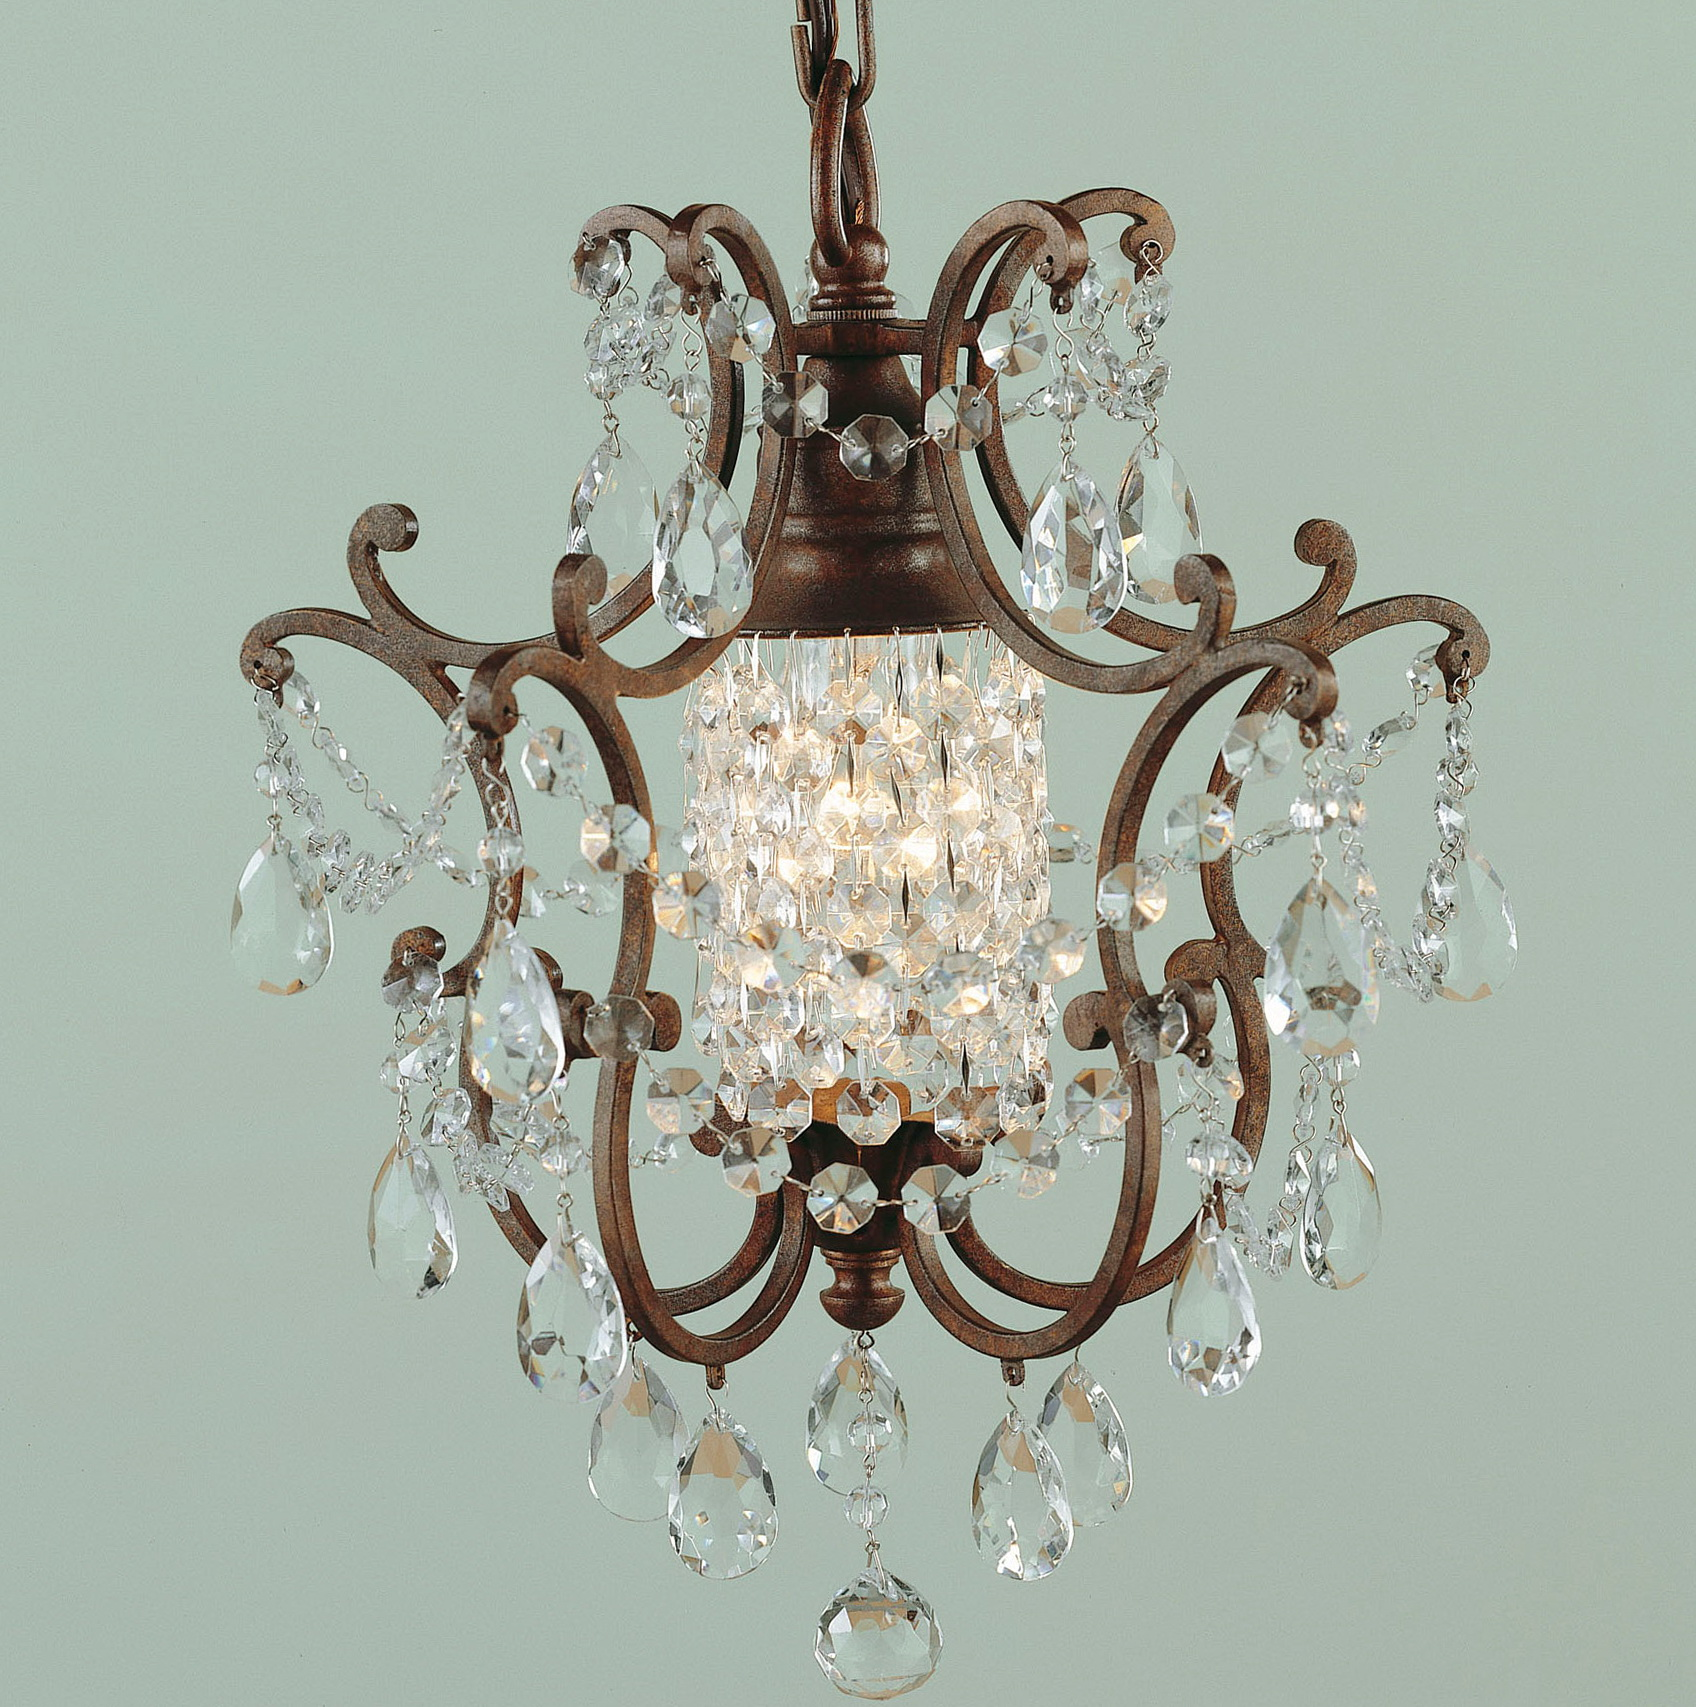 Mini Crystal Chandelier For Kitchen